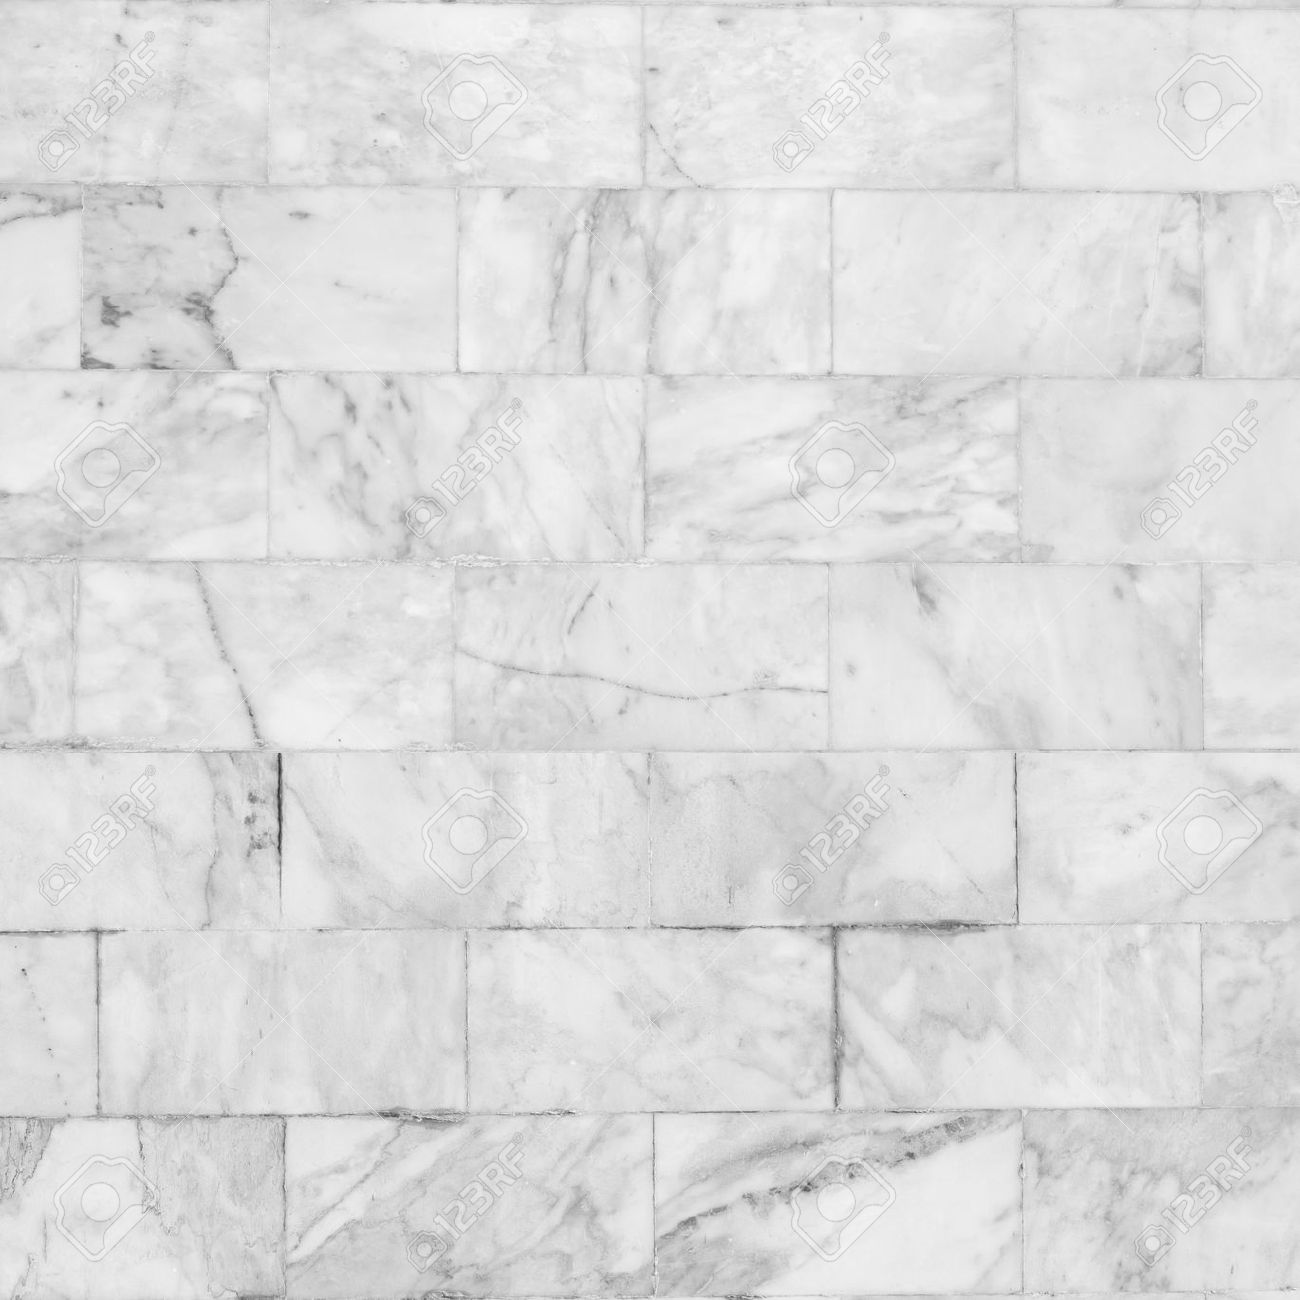 White Tile Floor Texture white marble tiles seamless flooring texture, detailed structure